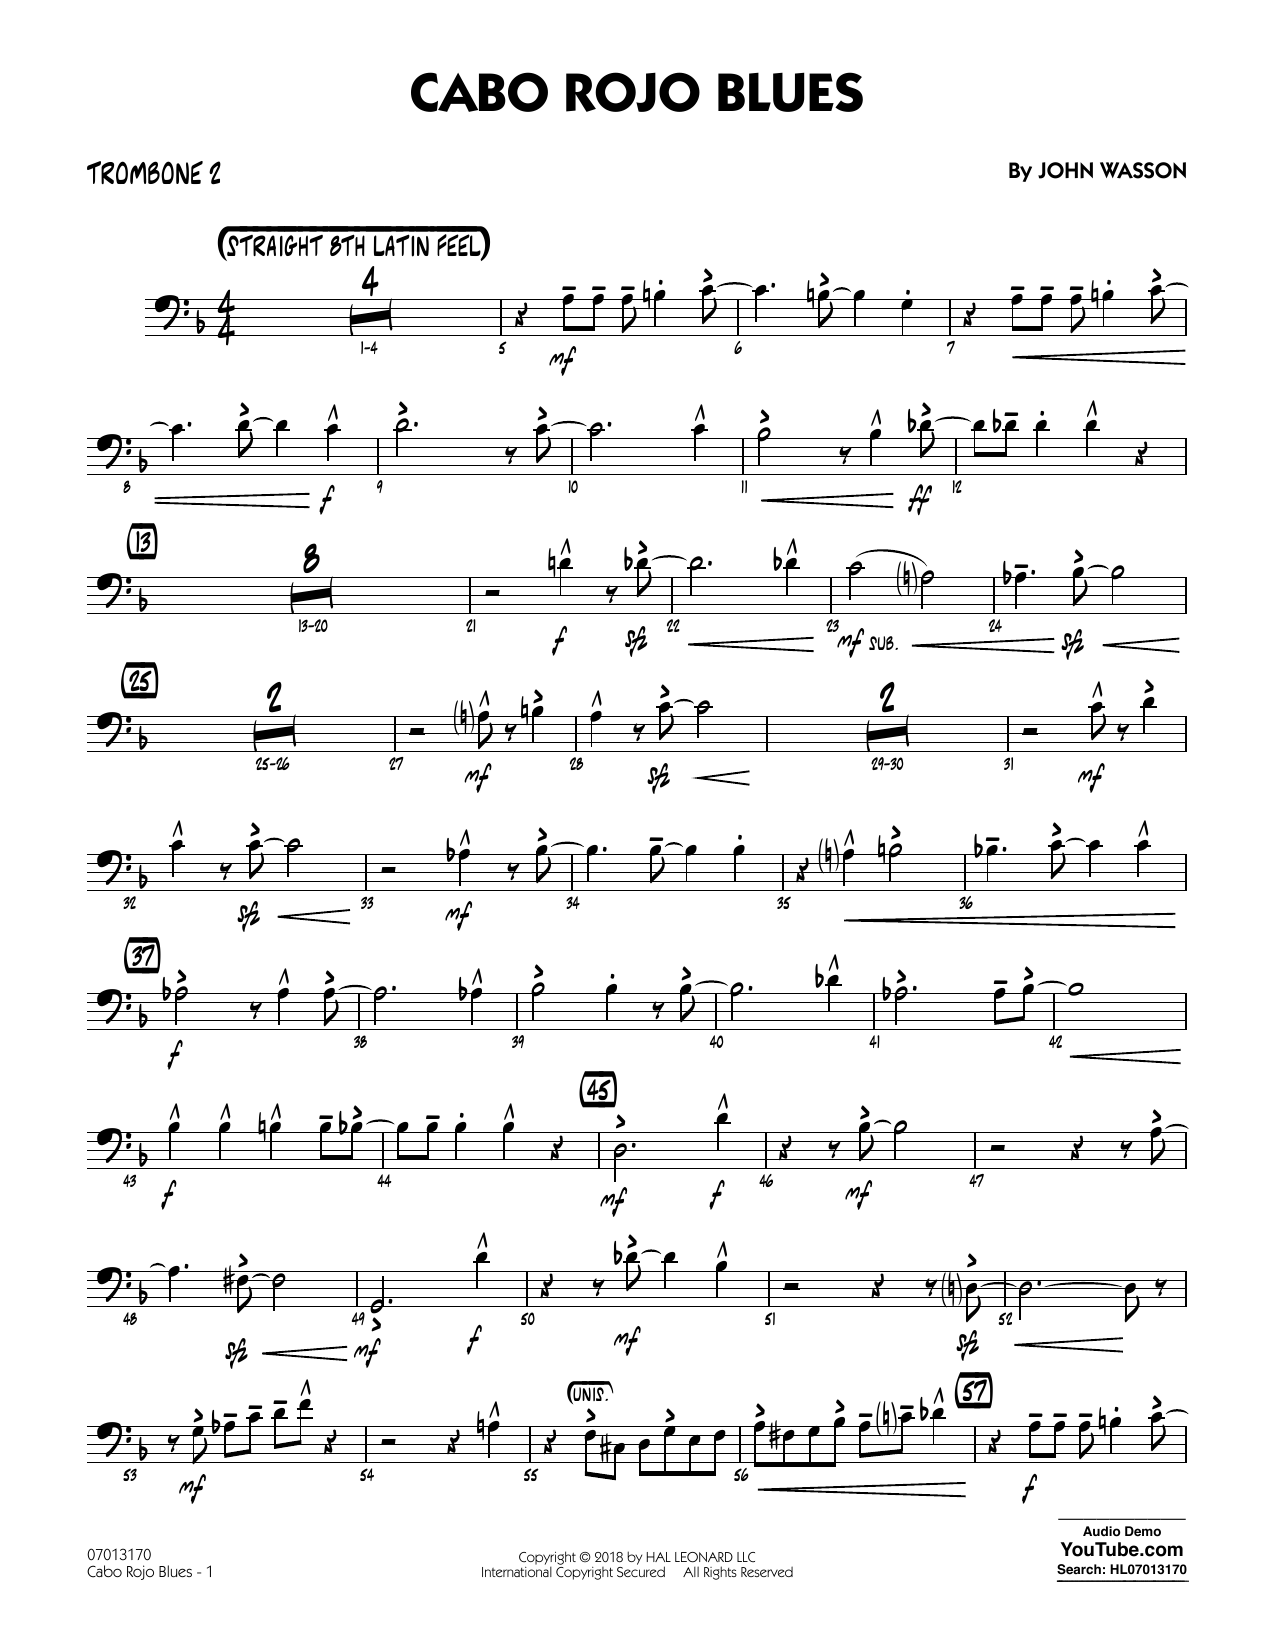 John Wasson Cabo Rojo Blues - Trombone 2 sheet music notes and chords. Download Printable PDF.